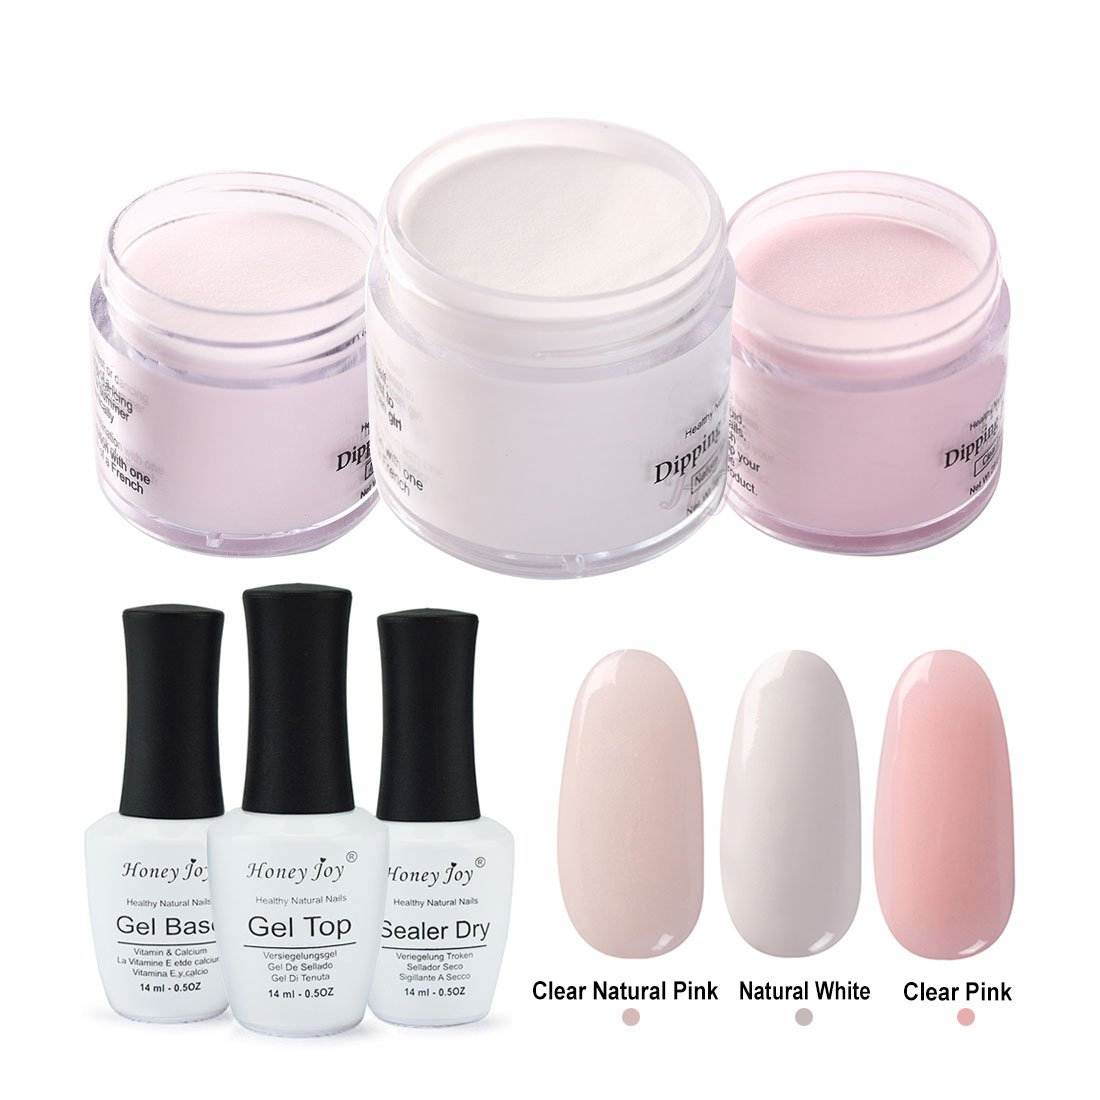 80d0f057fe9 Amazon.com  6 in 1 Dip Powder French Manicure Set Pink and White Dipping  Powder Nail Starter Kit Liquid System